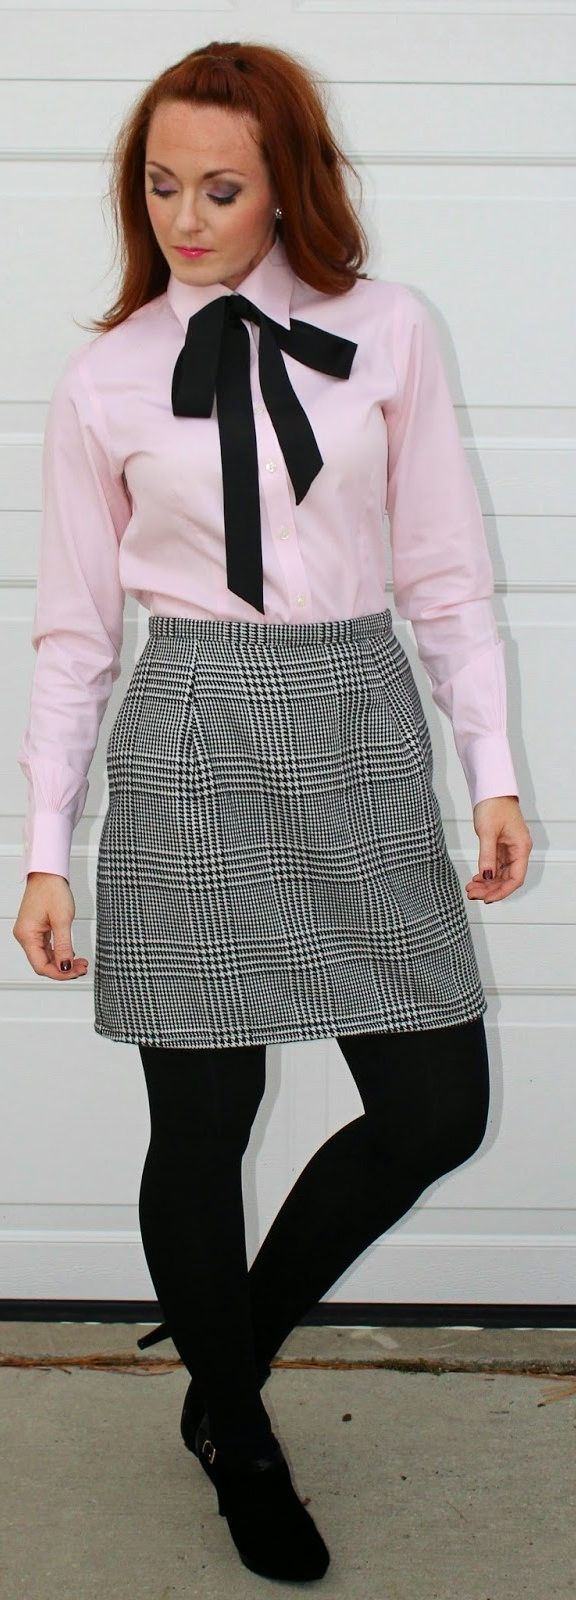 https://flic.kr/p/QBLzGE | Dressed For Work In Pink Shirt And Black Bow